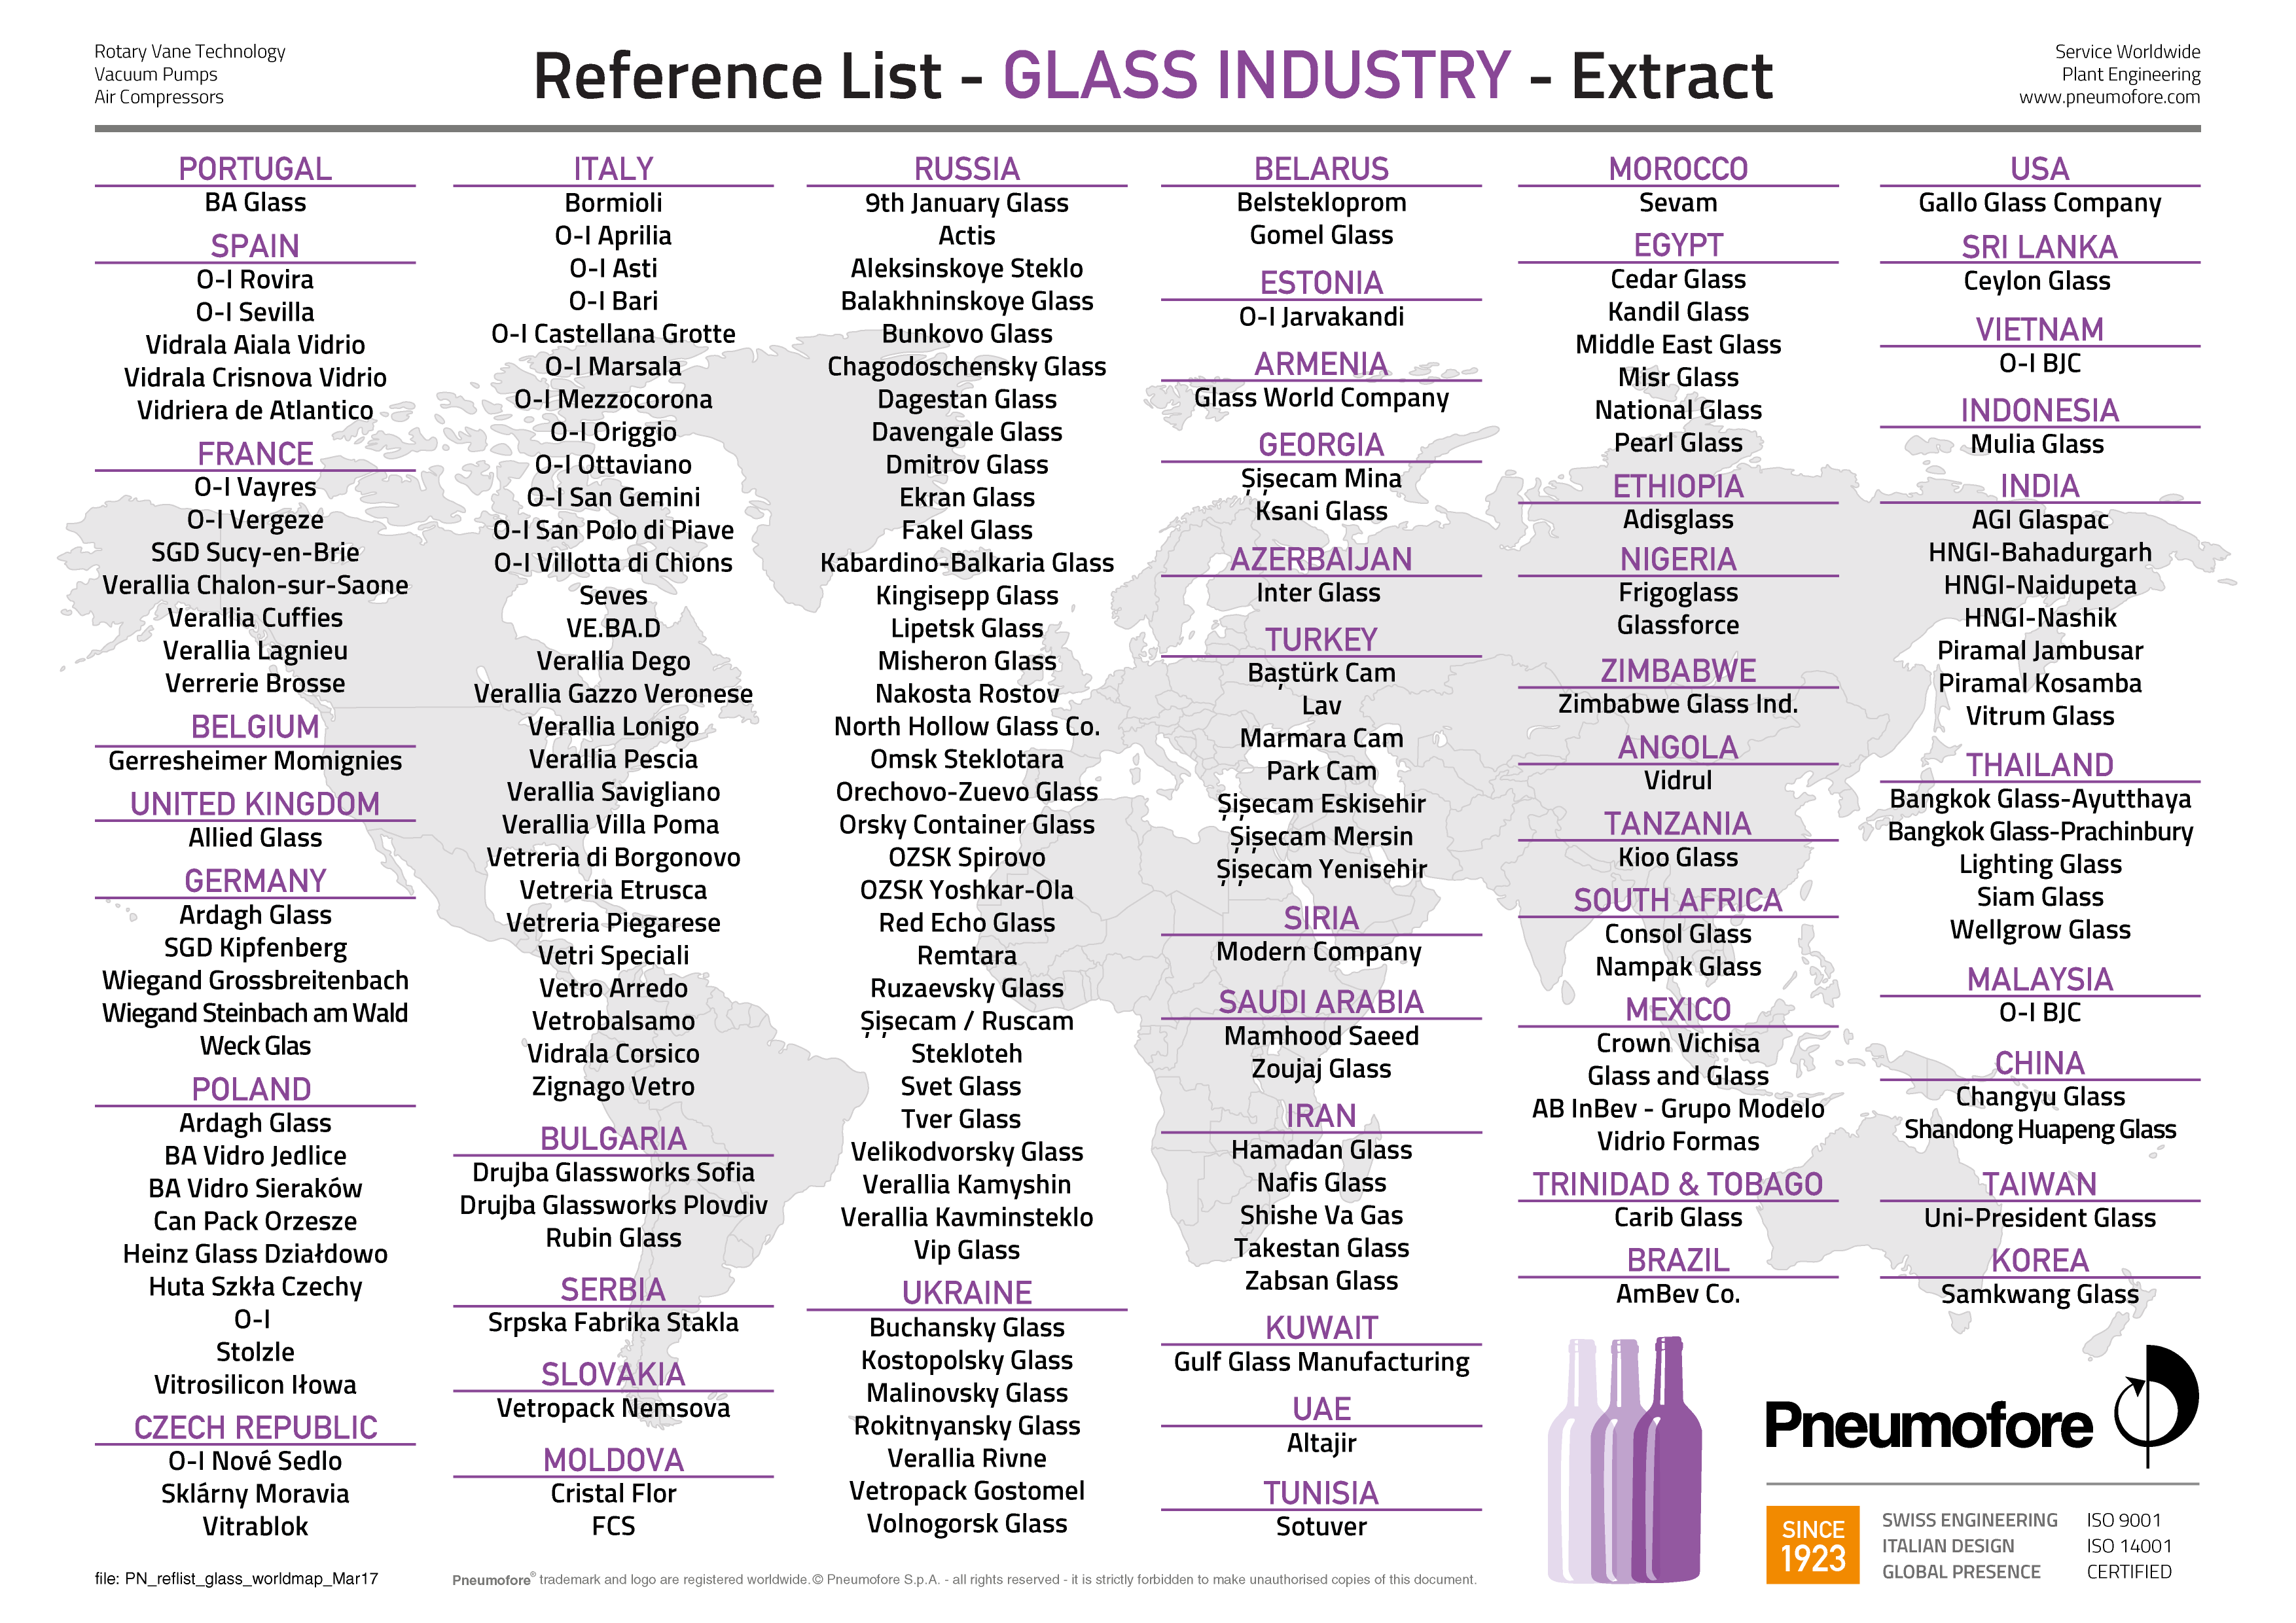 Reference List - GLASS INDUSTRY - Extract